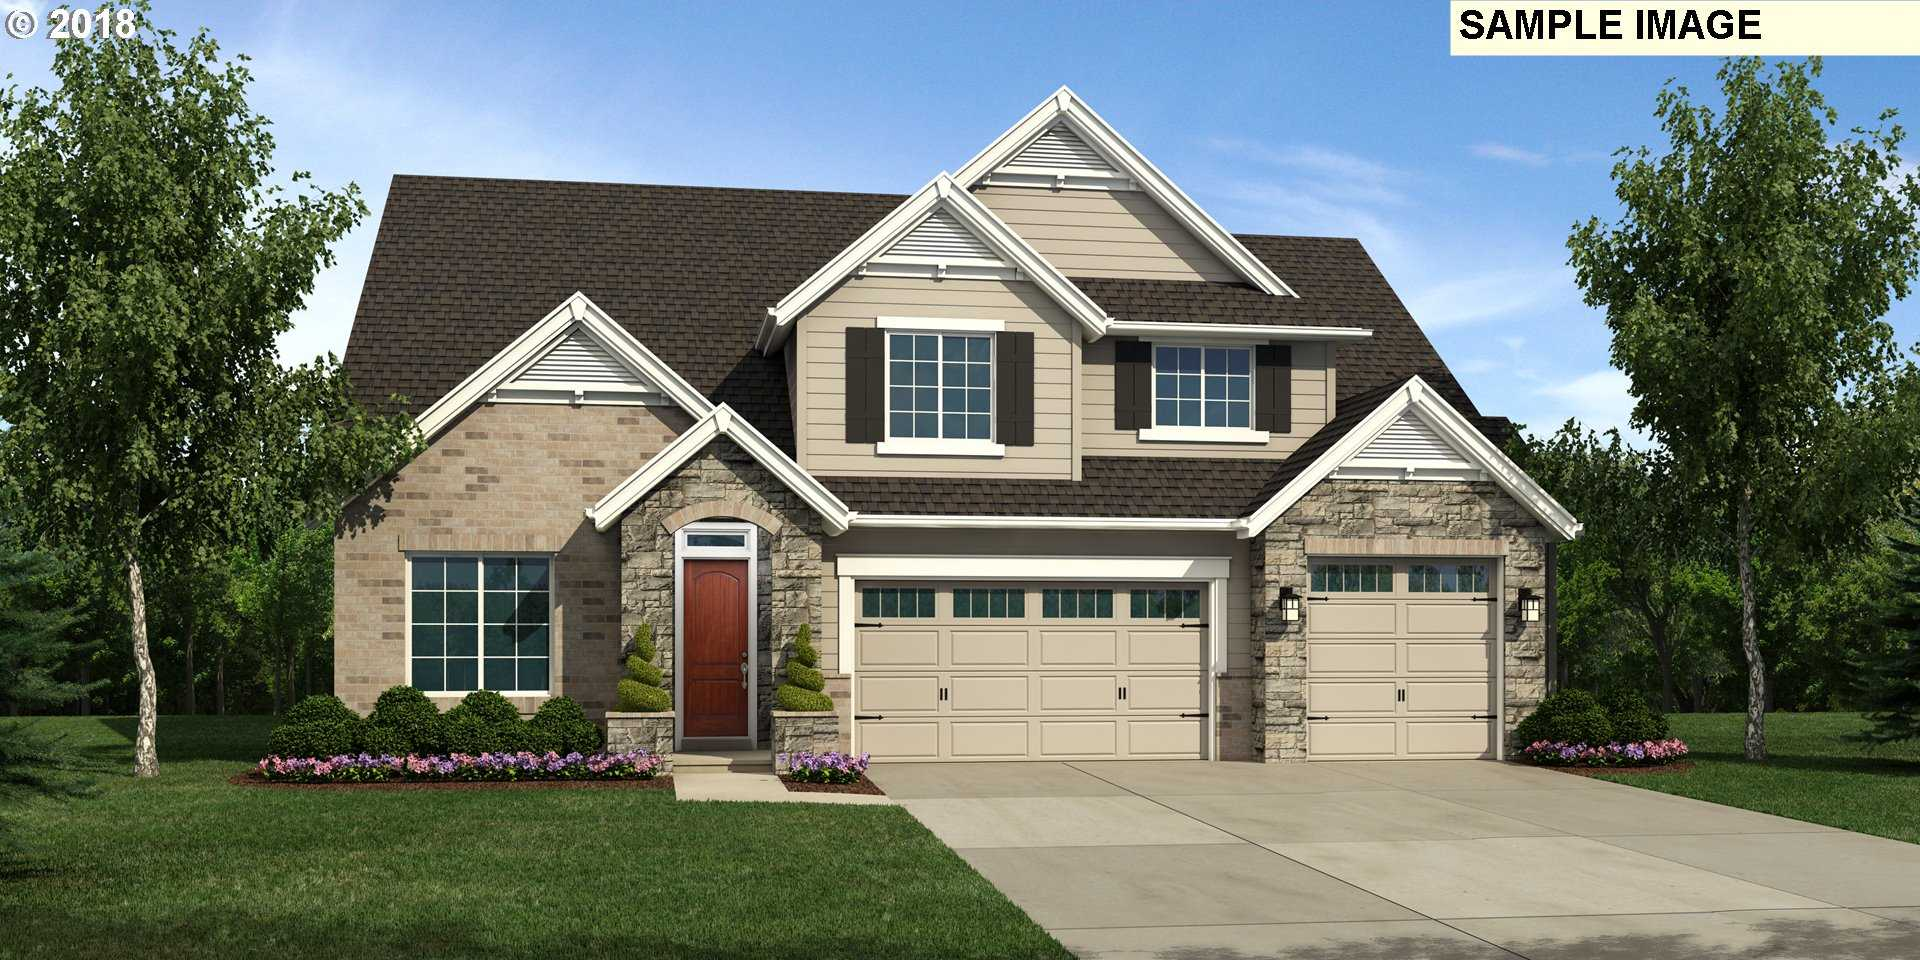 Pahlisch homes vancouver wa home review for Vancouver washington home builders